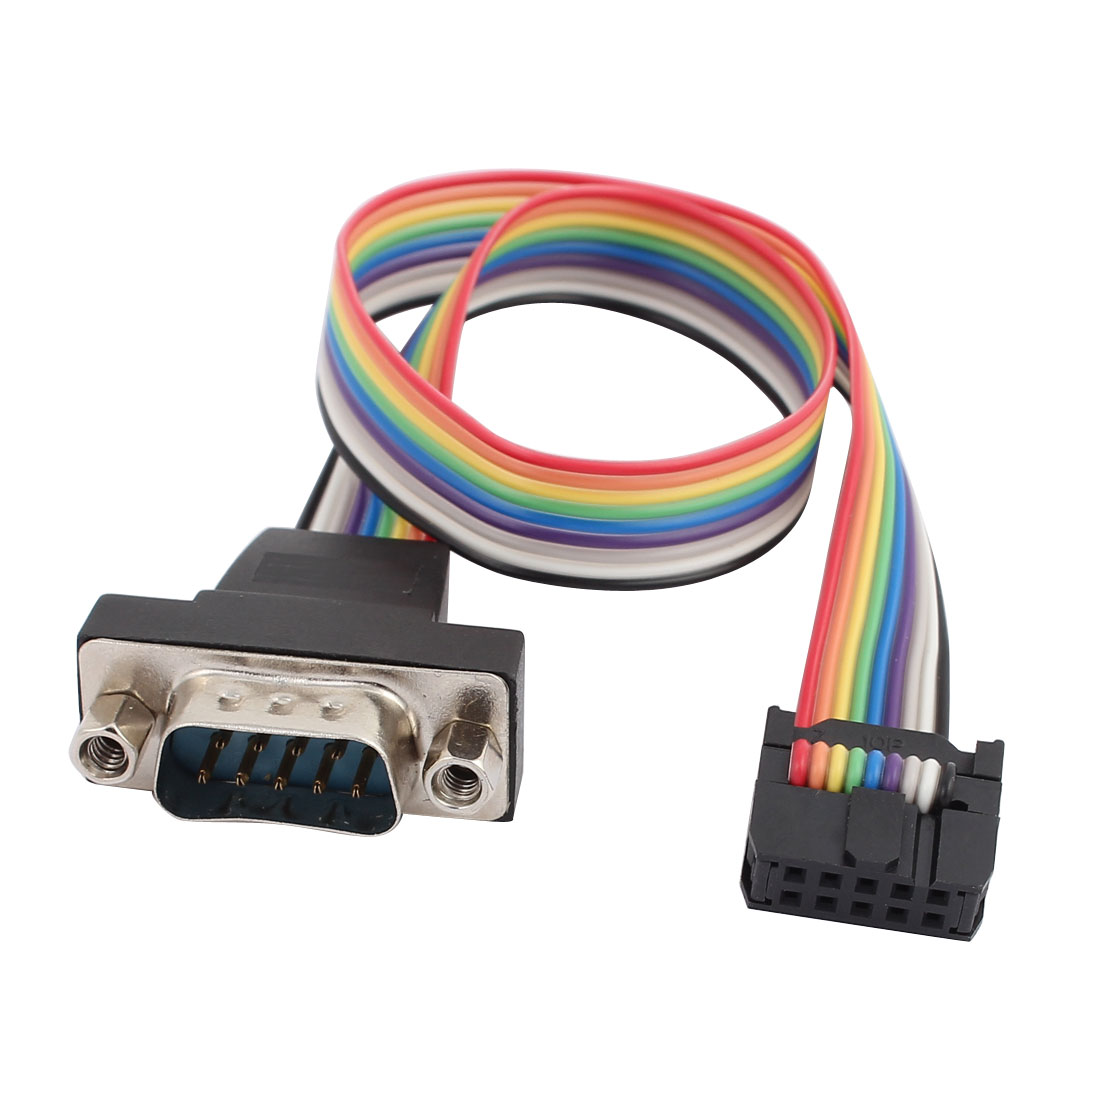 RS232 DB9 Female Serial Port To Double Row Female Head Jumper Wire 26cm Cables